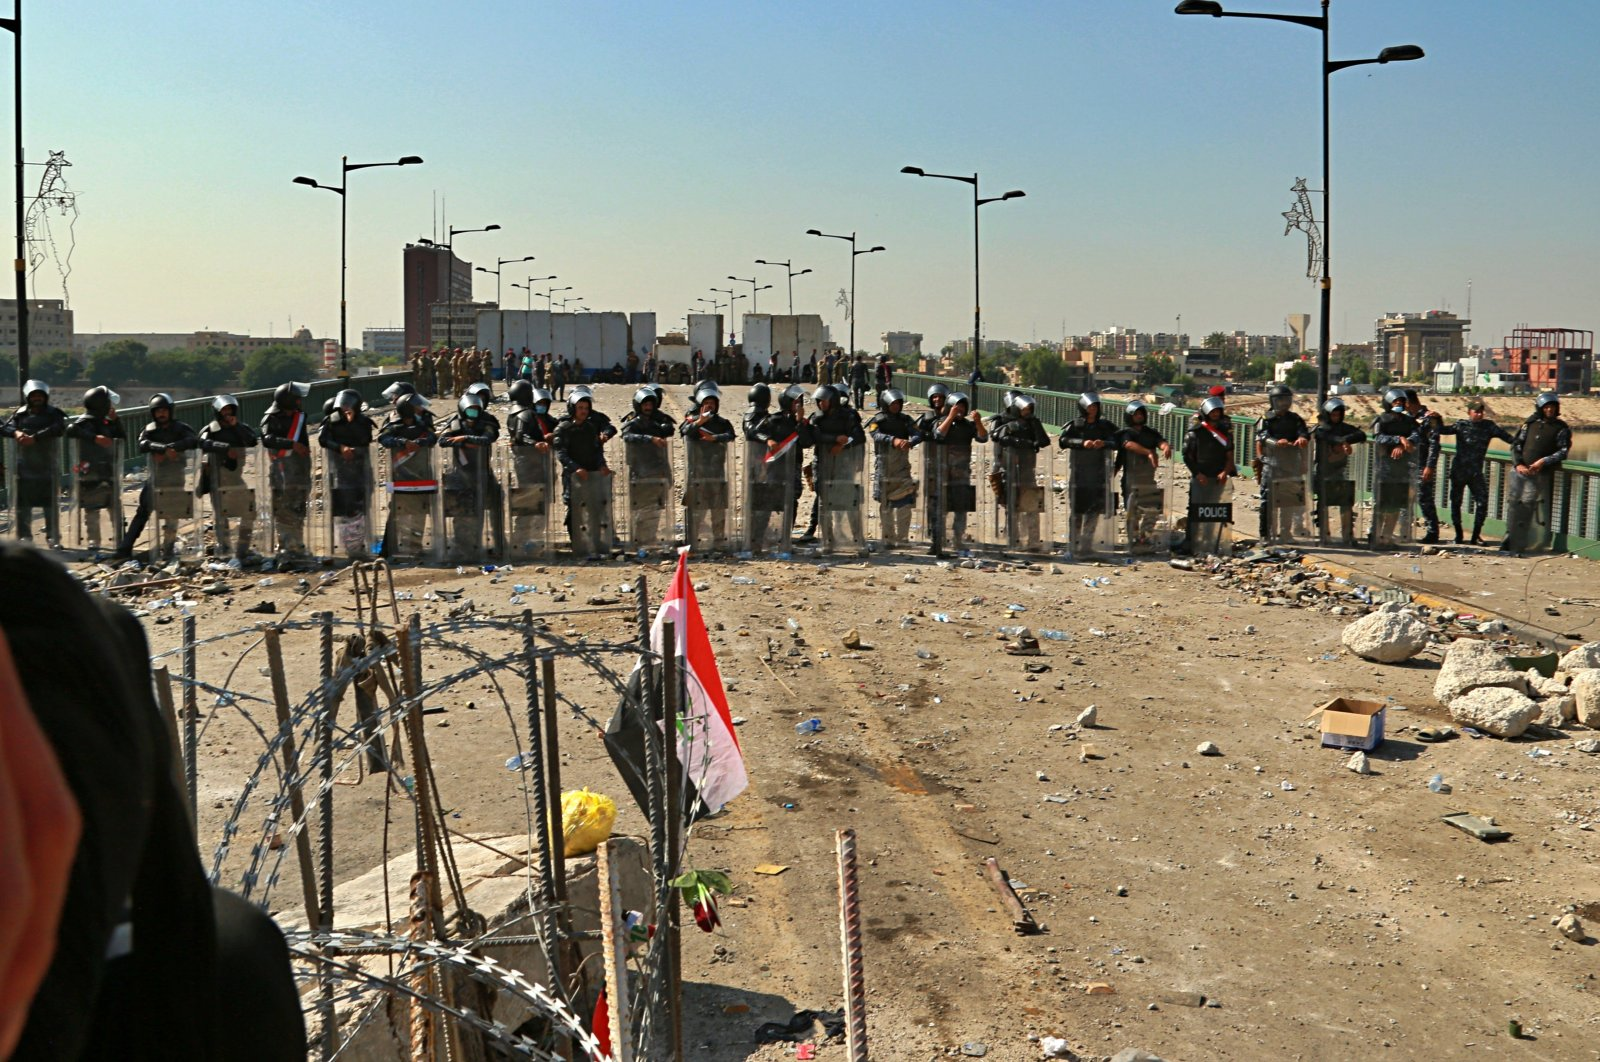 Security forces close the bridge leading to the Green Zone during a demonstration in Baghdad, Iraq, Saturday, Oct. 26, 2019. (AP Photo)